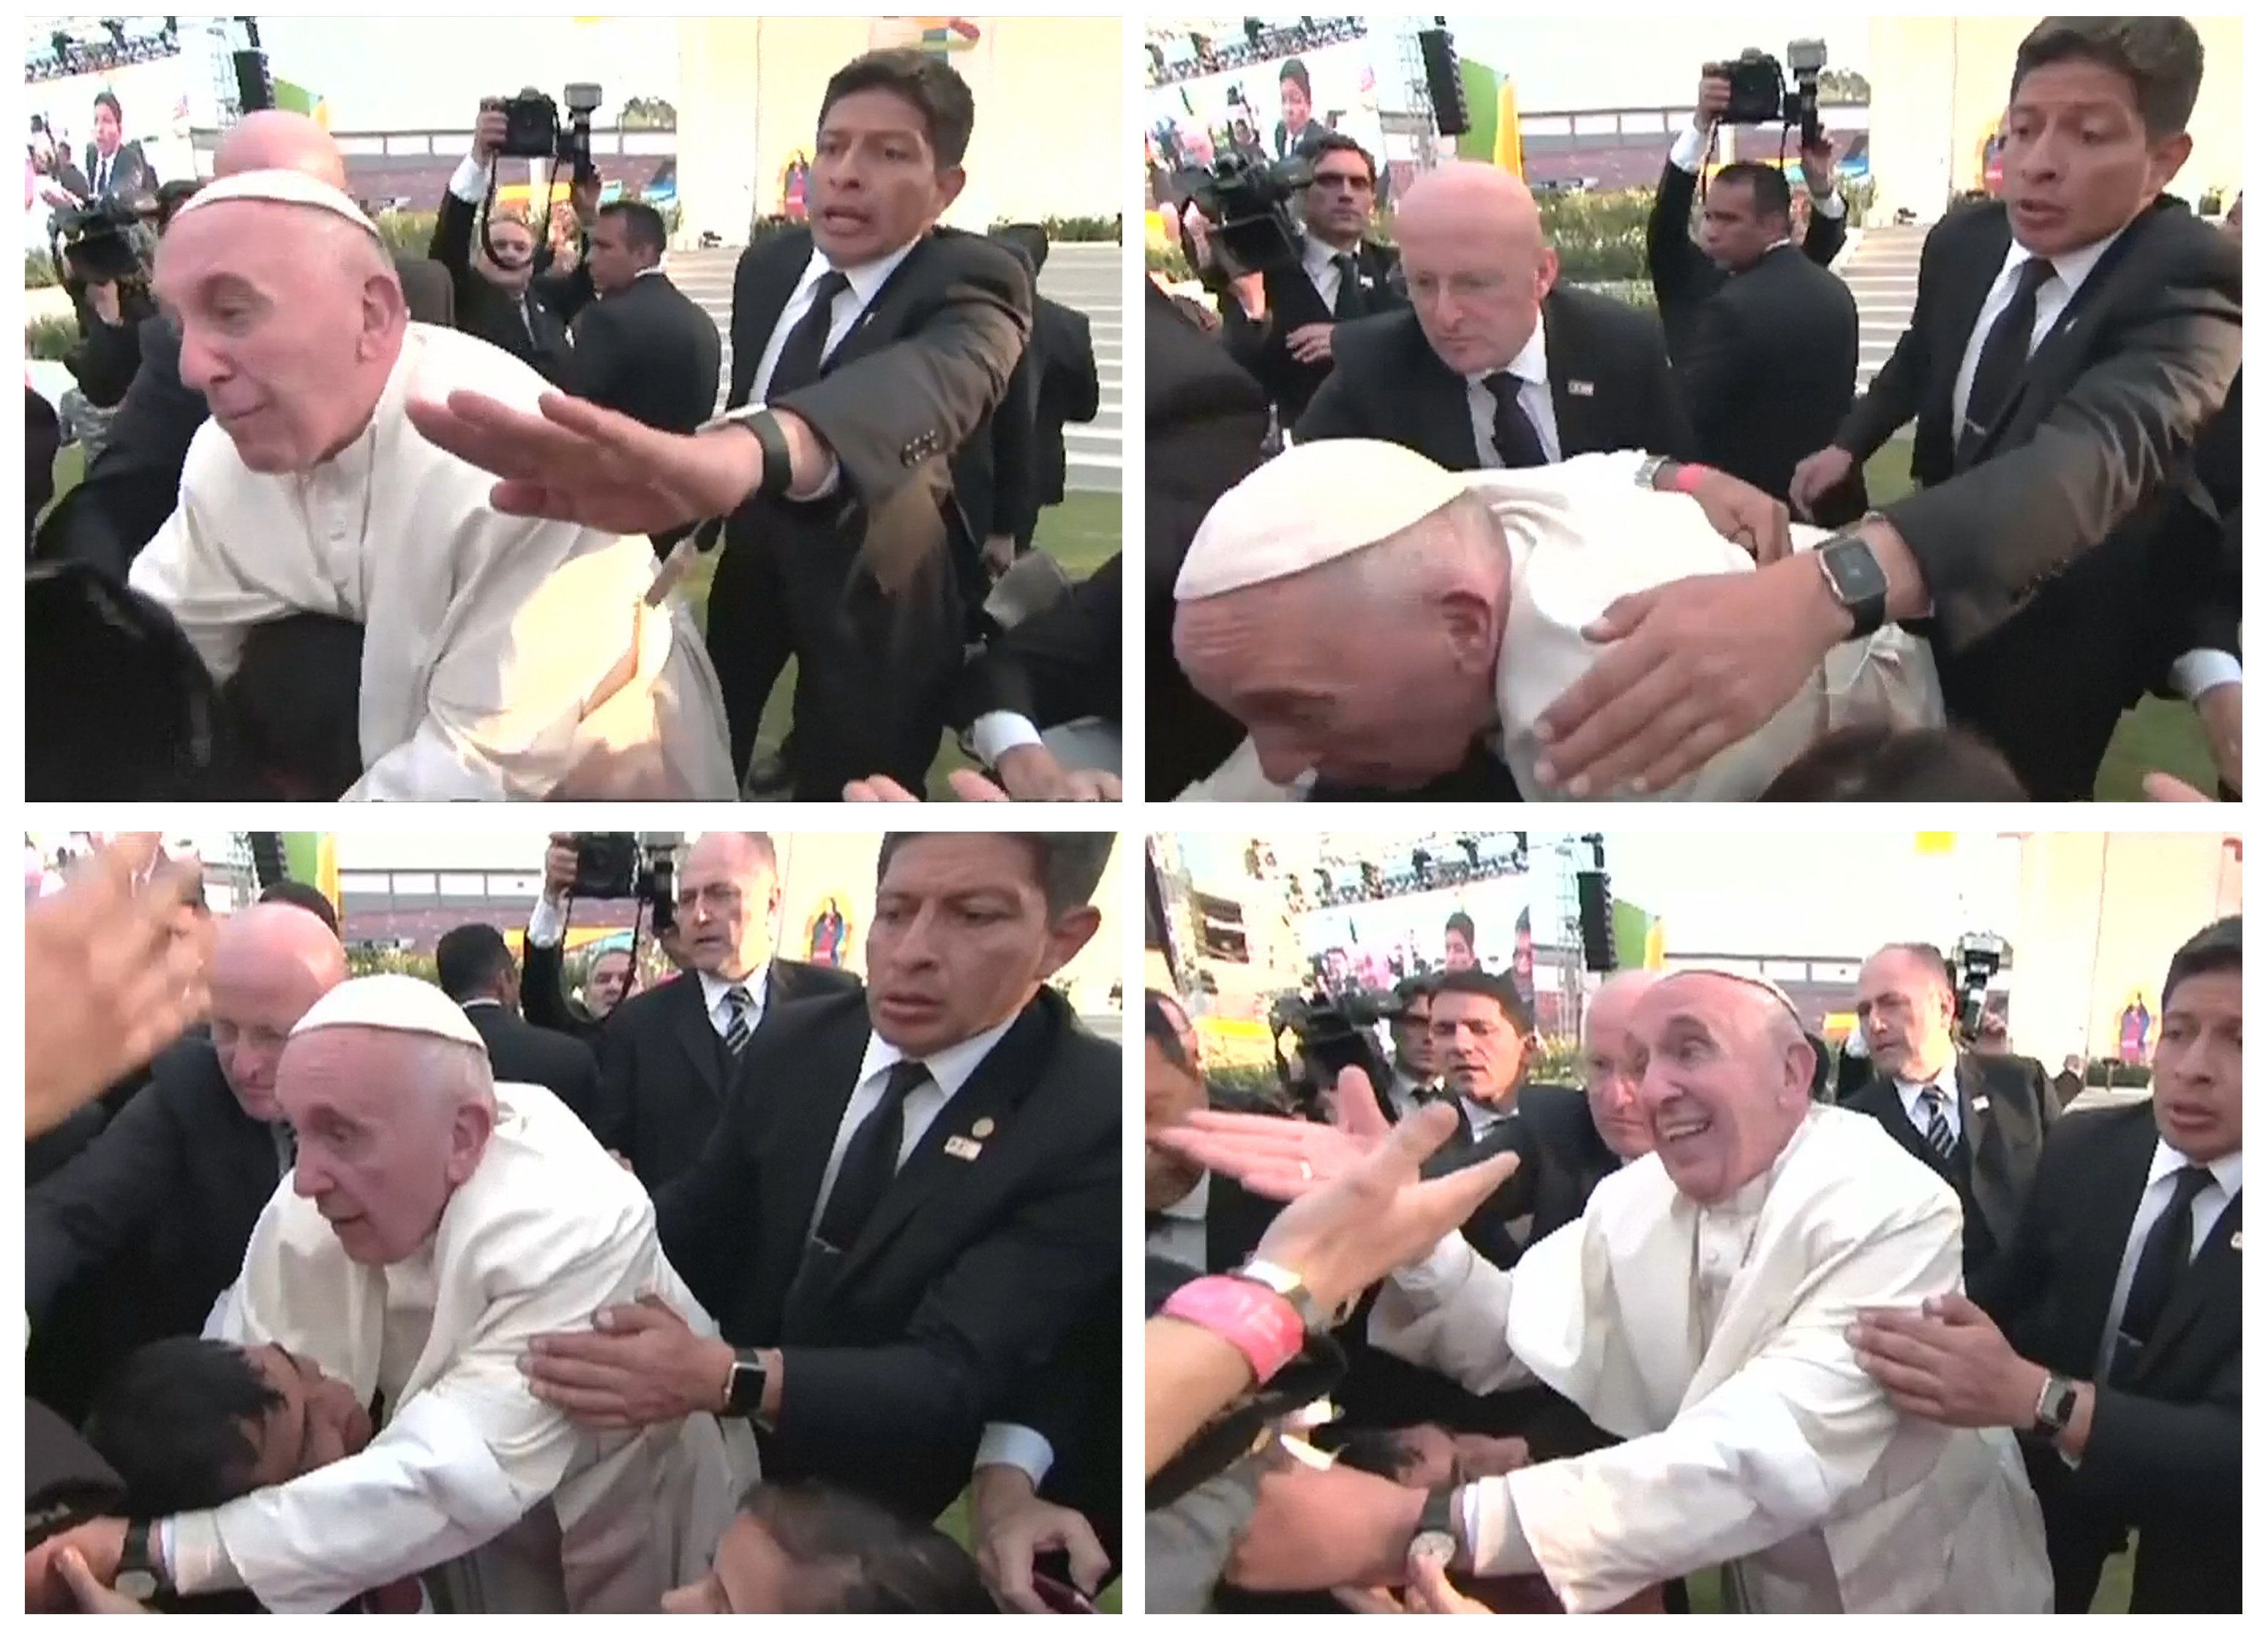 "Pope Francis is pulled towards the crowd, over a child in a wheelchair, during a visit to a stadium in Morelia, Mexico on February 16, 2016 in a combination of still image from pool video. Pope Francis, who is usually calm and accommodating with his admirers, clearly lost his temper with a person who pulled on him so hard that he fell onto a child on a wheel chair. Video footage showed that while the pope was walking at the edge of a crowd in an stadium, he stopped to greet children who were sitting. Two arms reached out to grab him and the person would not let go, even after the pope lost his balance and his chest was pressing on the child's head. Aides and security men stopped the pope from falling to the ground. After he returned to an upright position, his face turned angry. He looked at the person, raised his voice and said twice in Spanish: ""Don't be selfish!"". Images taken February 16, 2016.  REUTERS/Mexican Government Televison/POOL via Reuters TV  TPX IMAGES OF THE DAYFOR EDITORIAL USE ONLY. NOT FOR SALE FOR MARKETING OR ADVERTISING CAMPAIGNS - RTX27DVU"